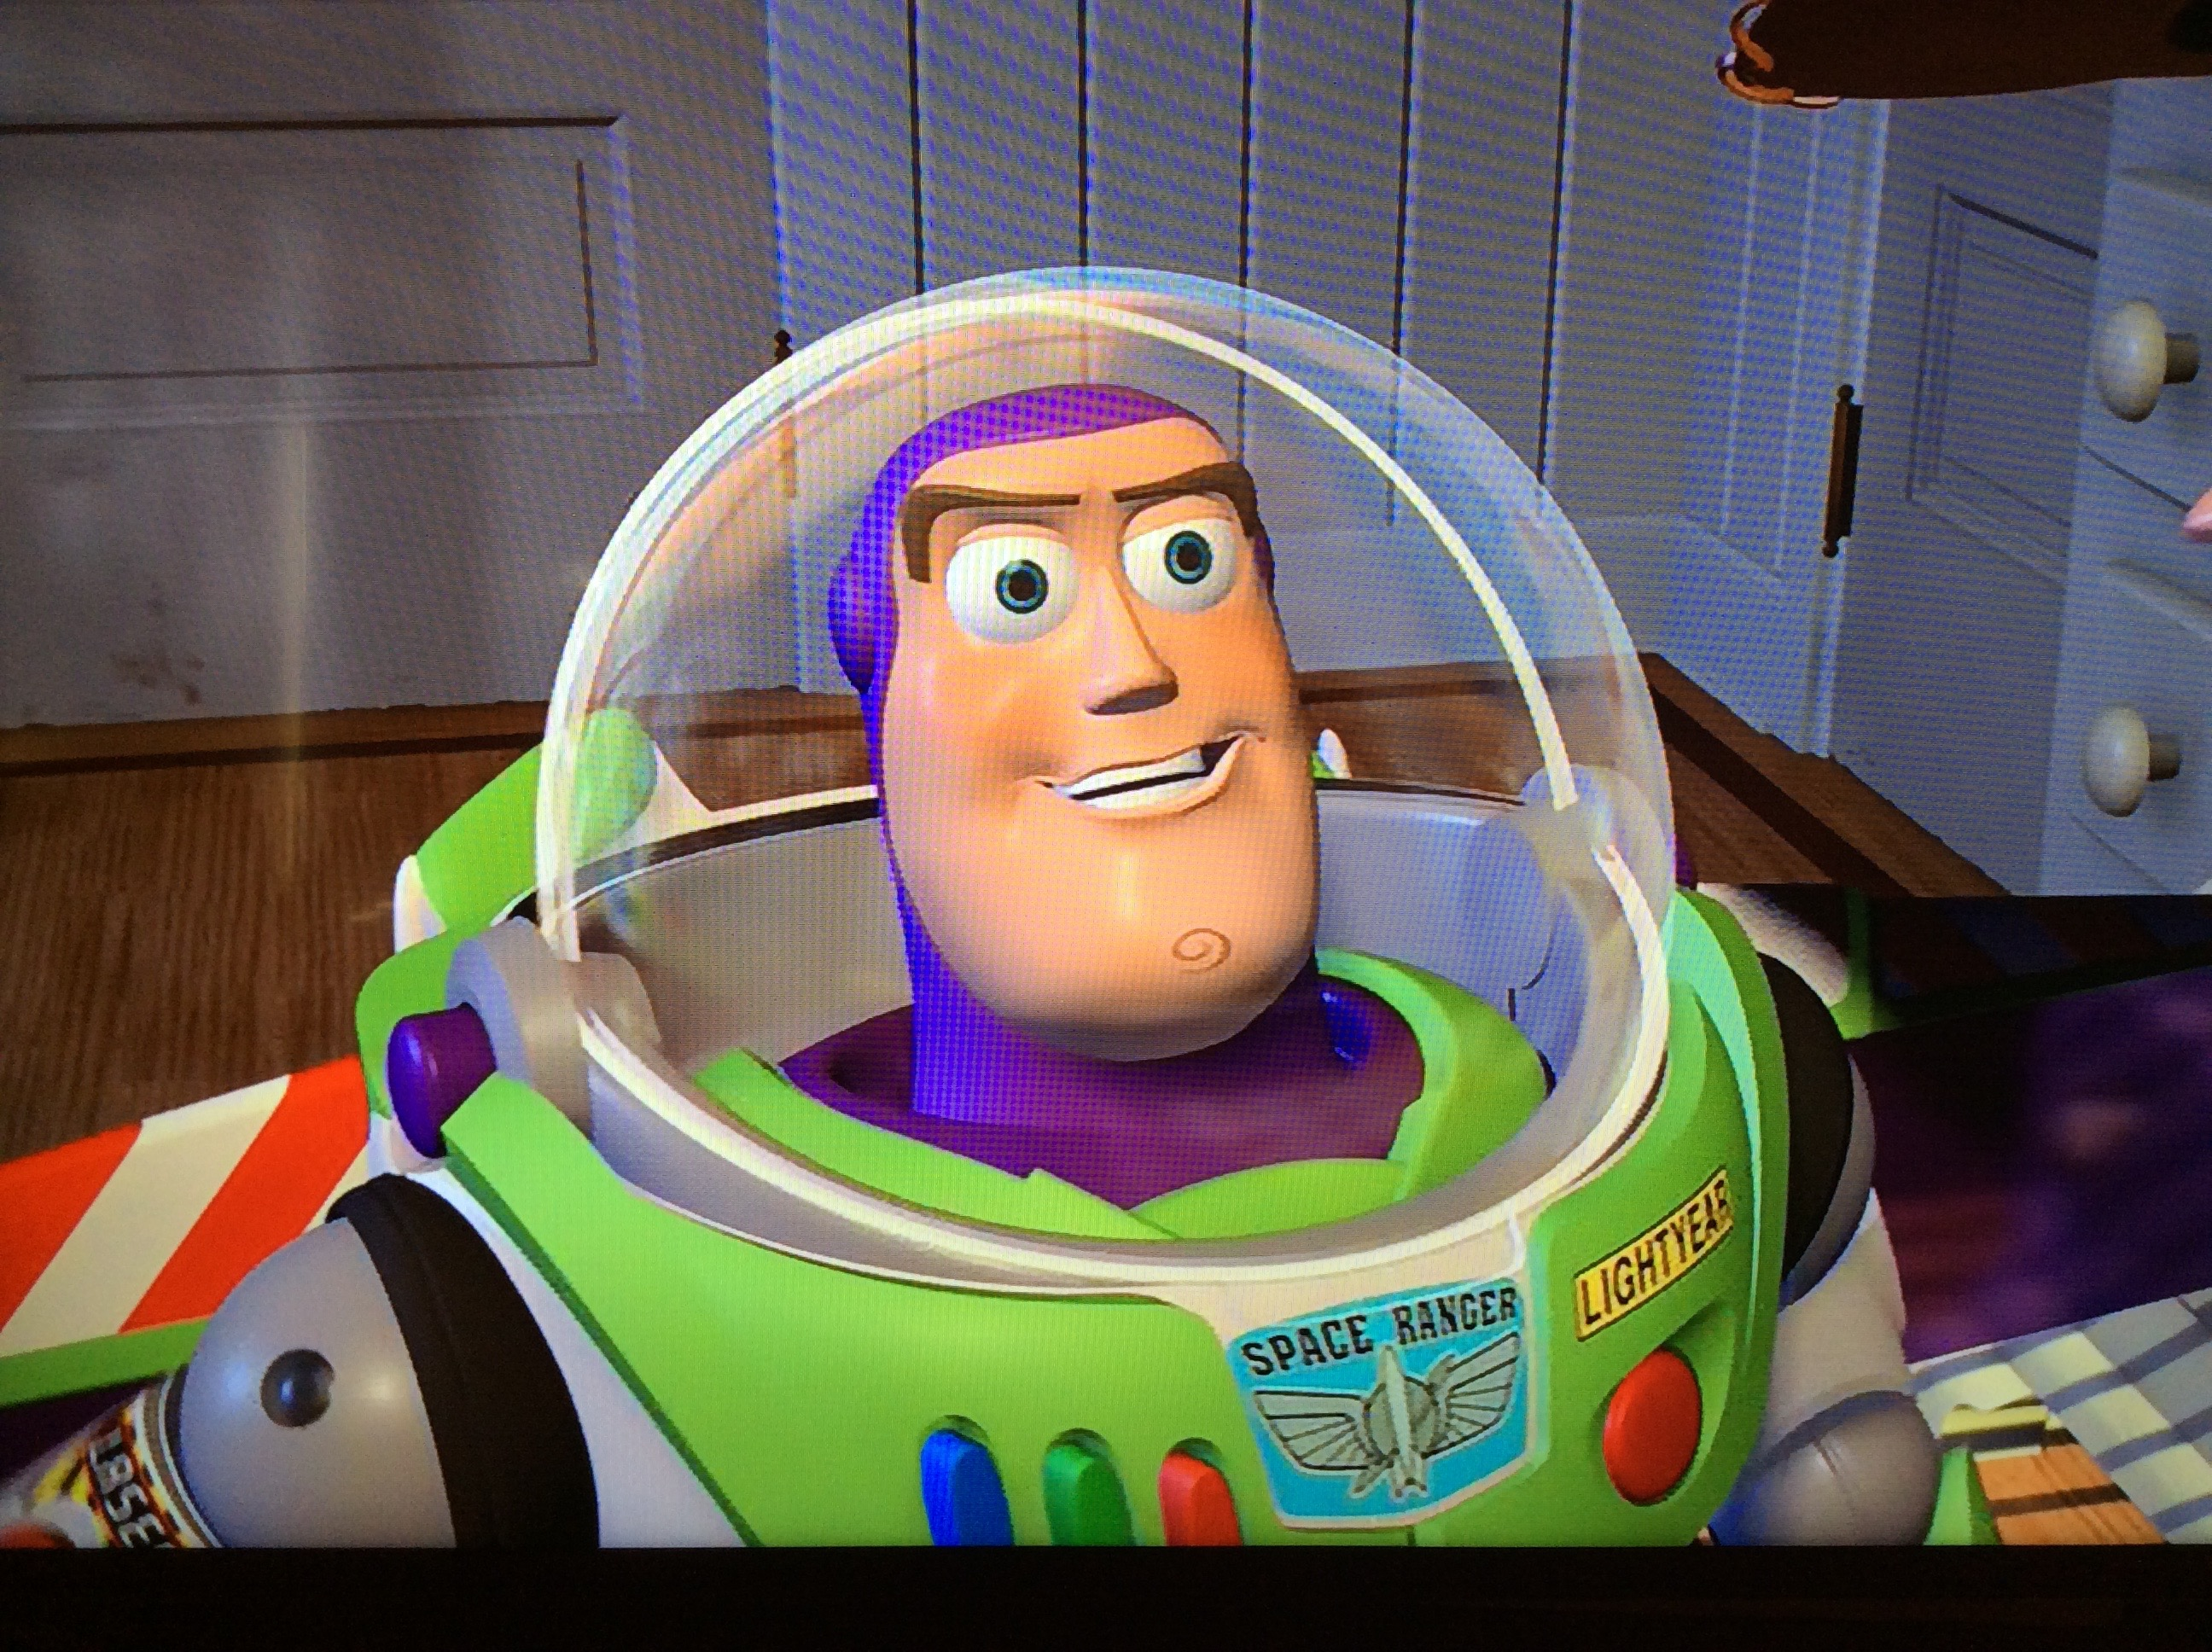 http://vignette3.wikia.nocookie.net/disney/images/e/e3/Buzz_Lightyear_out_of_the_box.jpg/revision/latest?cb=20130101220439